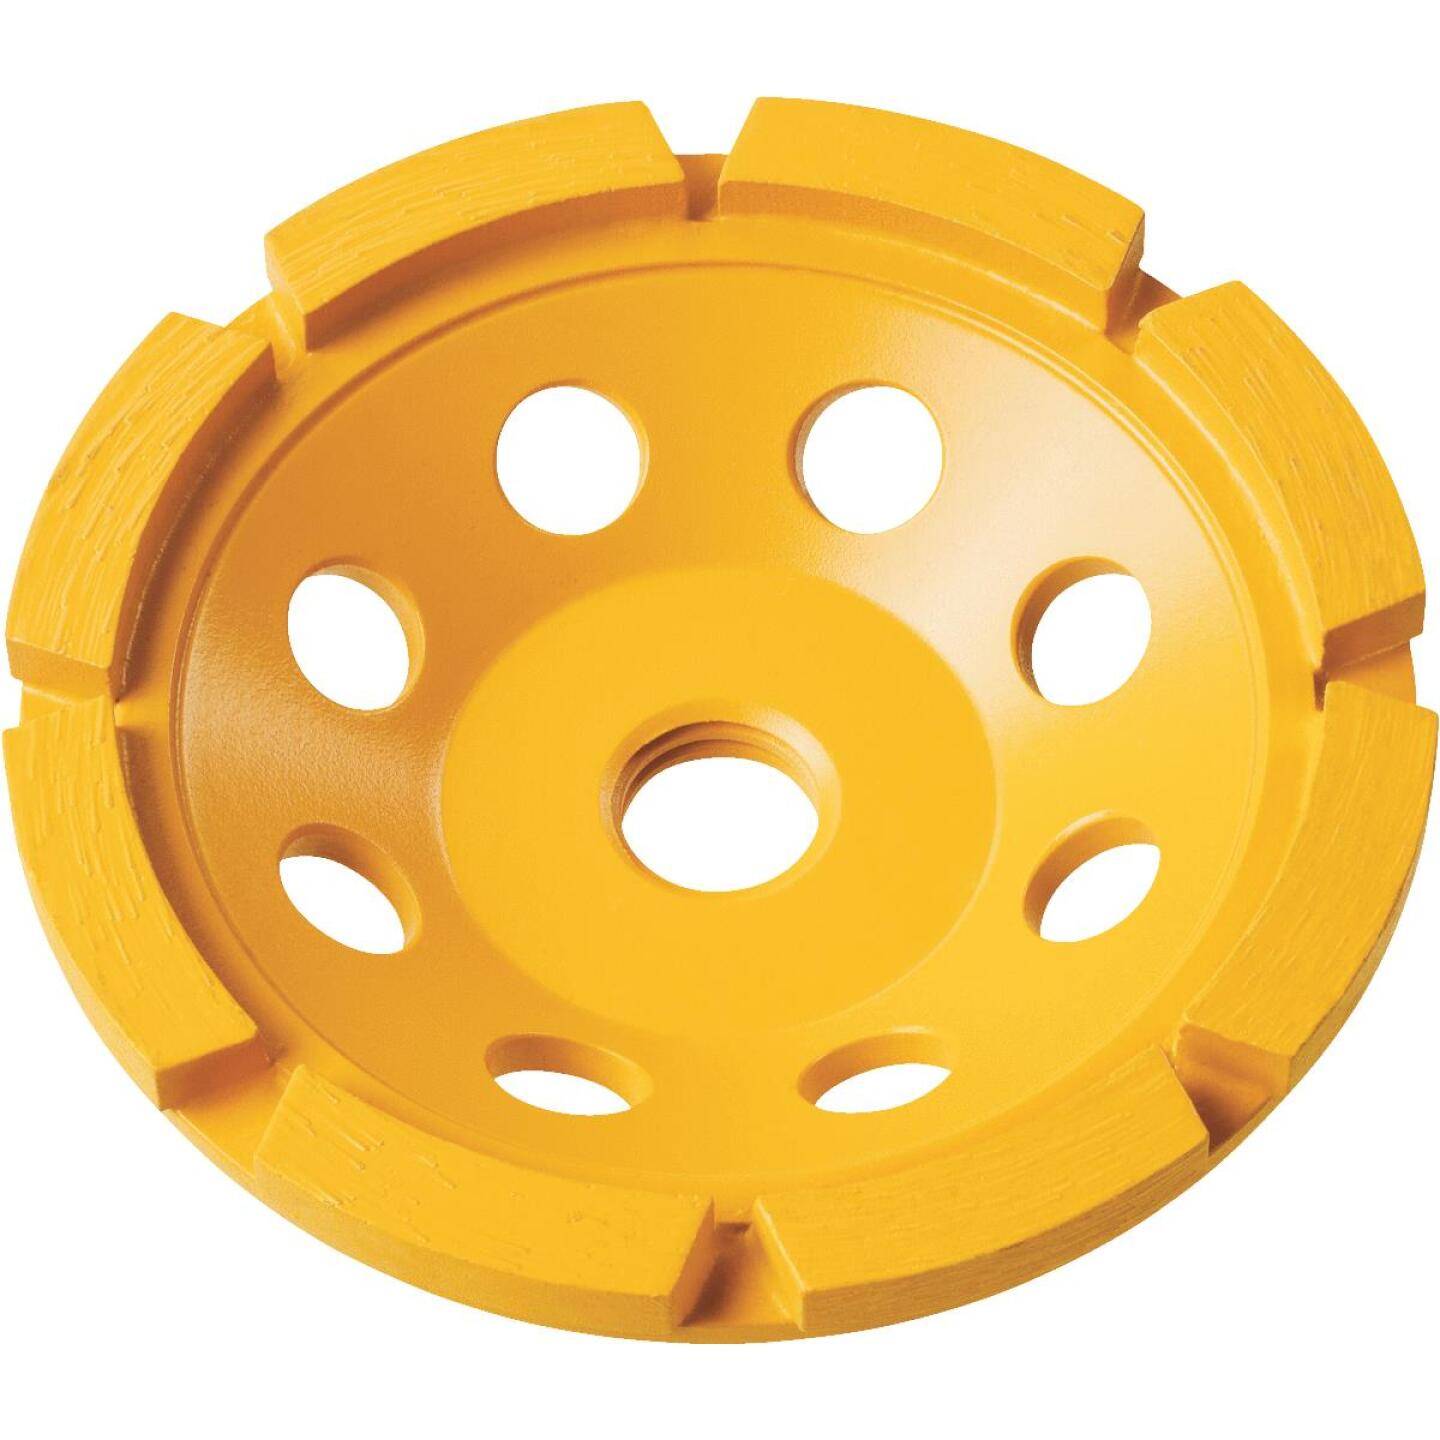 DeWalt 4 In. Segmented Single Row Cup Wheel Image 1